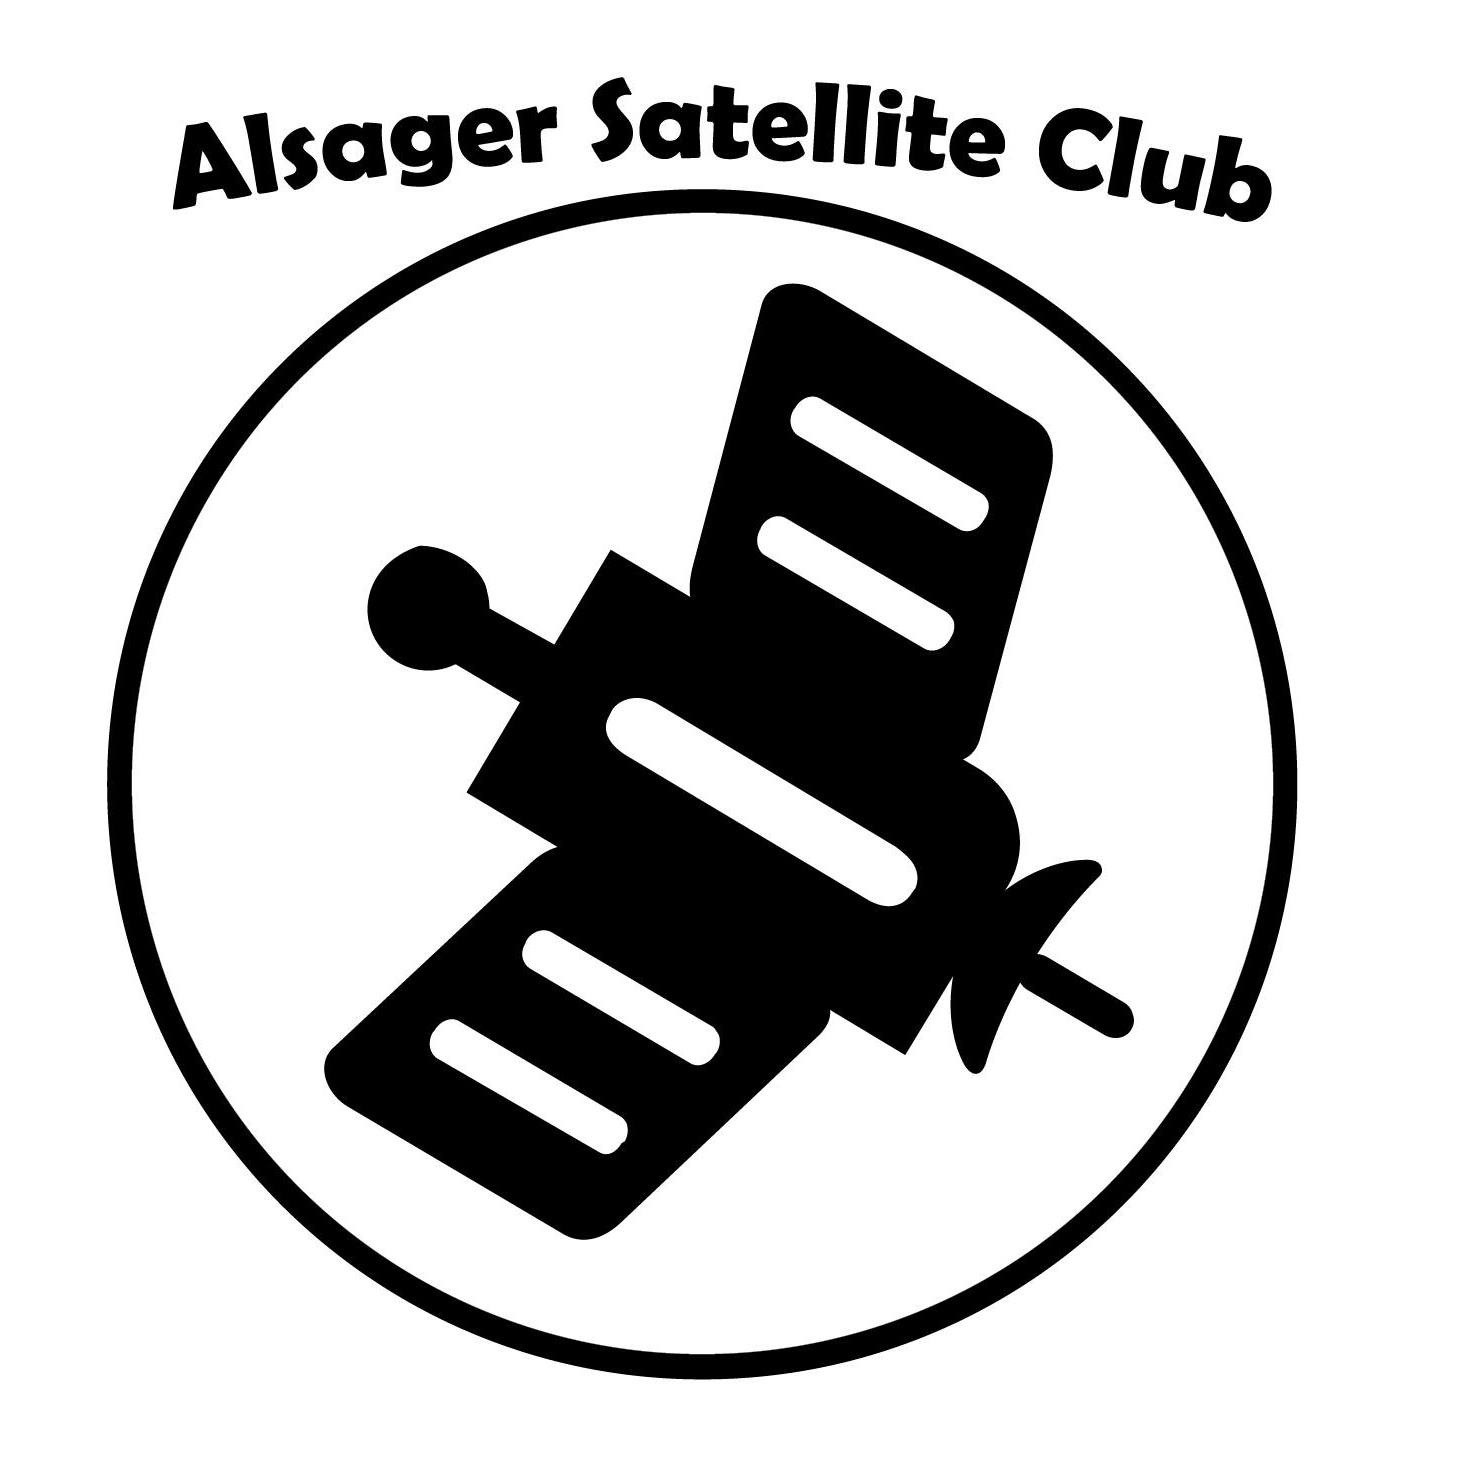 Alsager Satellite Club